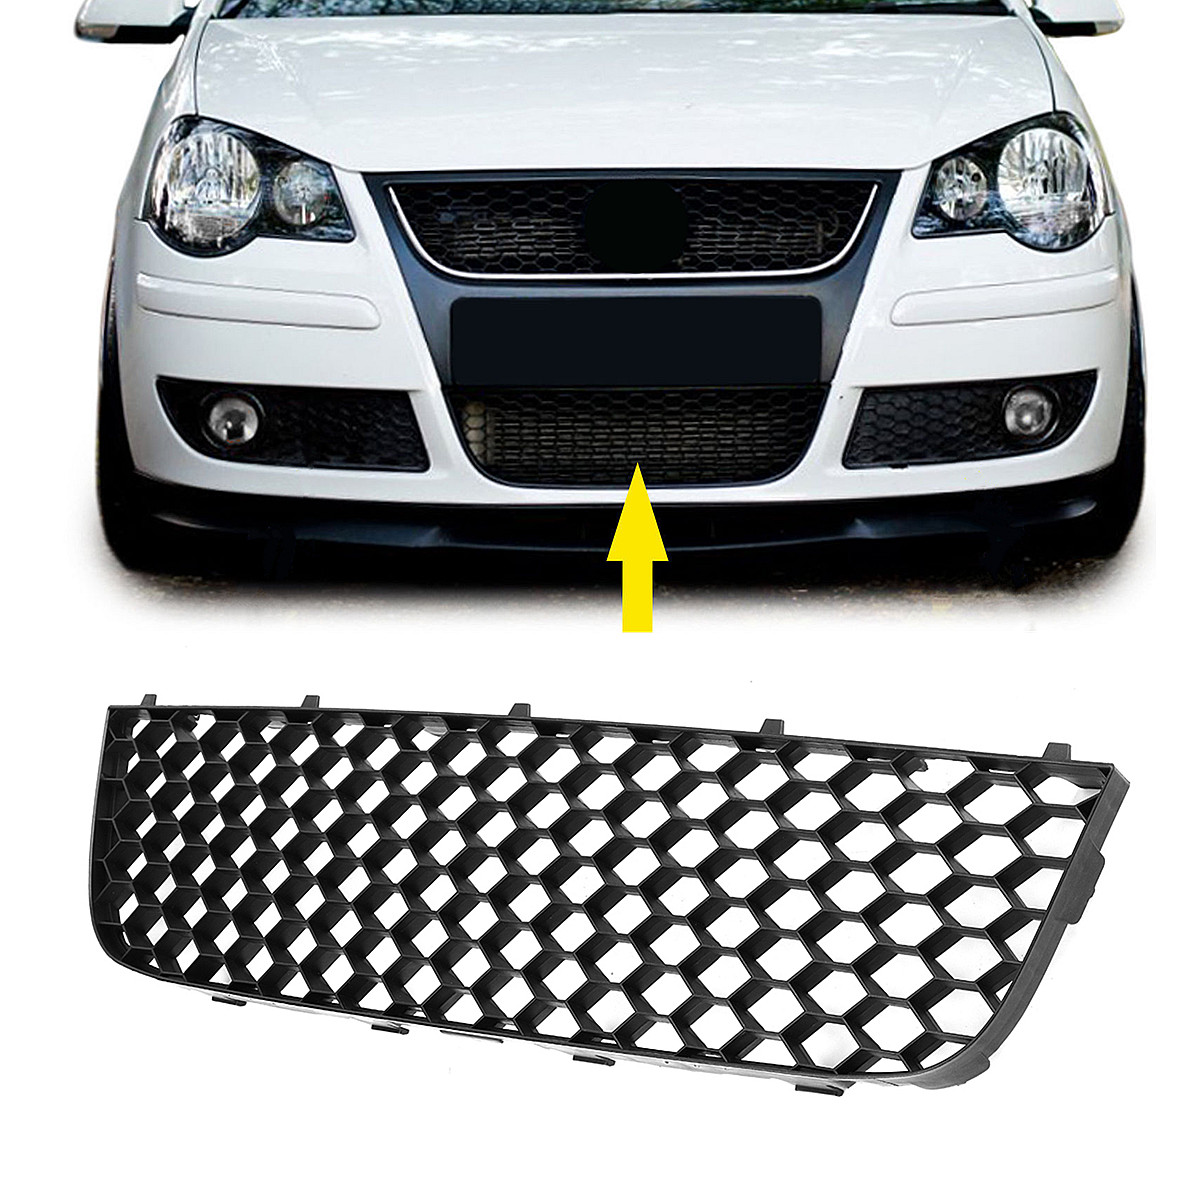 Car Front Bumper Lower Fog Light Vent Grille Fit For VW POLO GTI 06 09 MK4 9N3 Black ABS Perfect Match Clean/Elegant Style